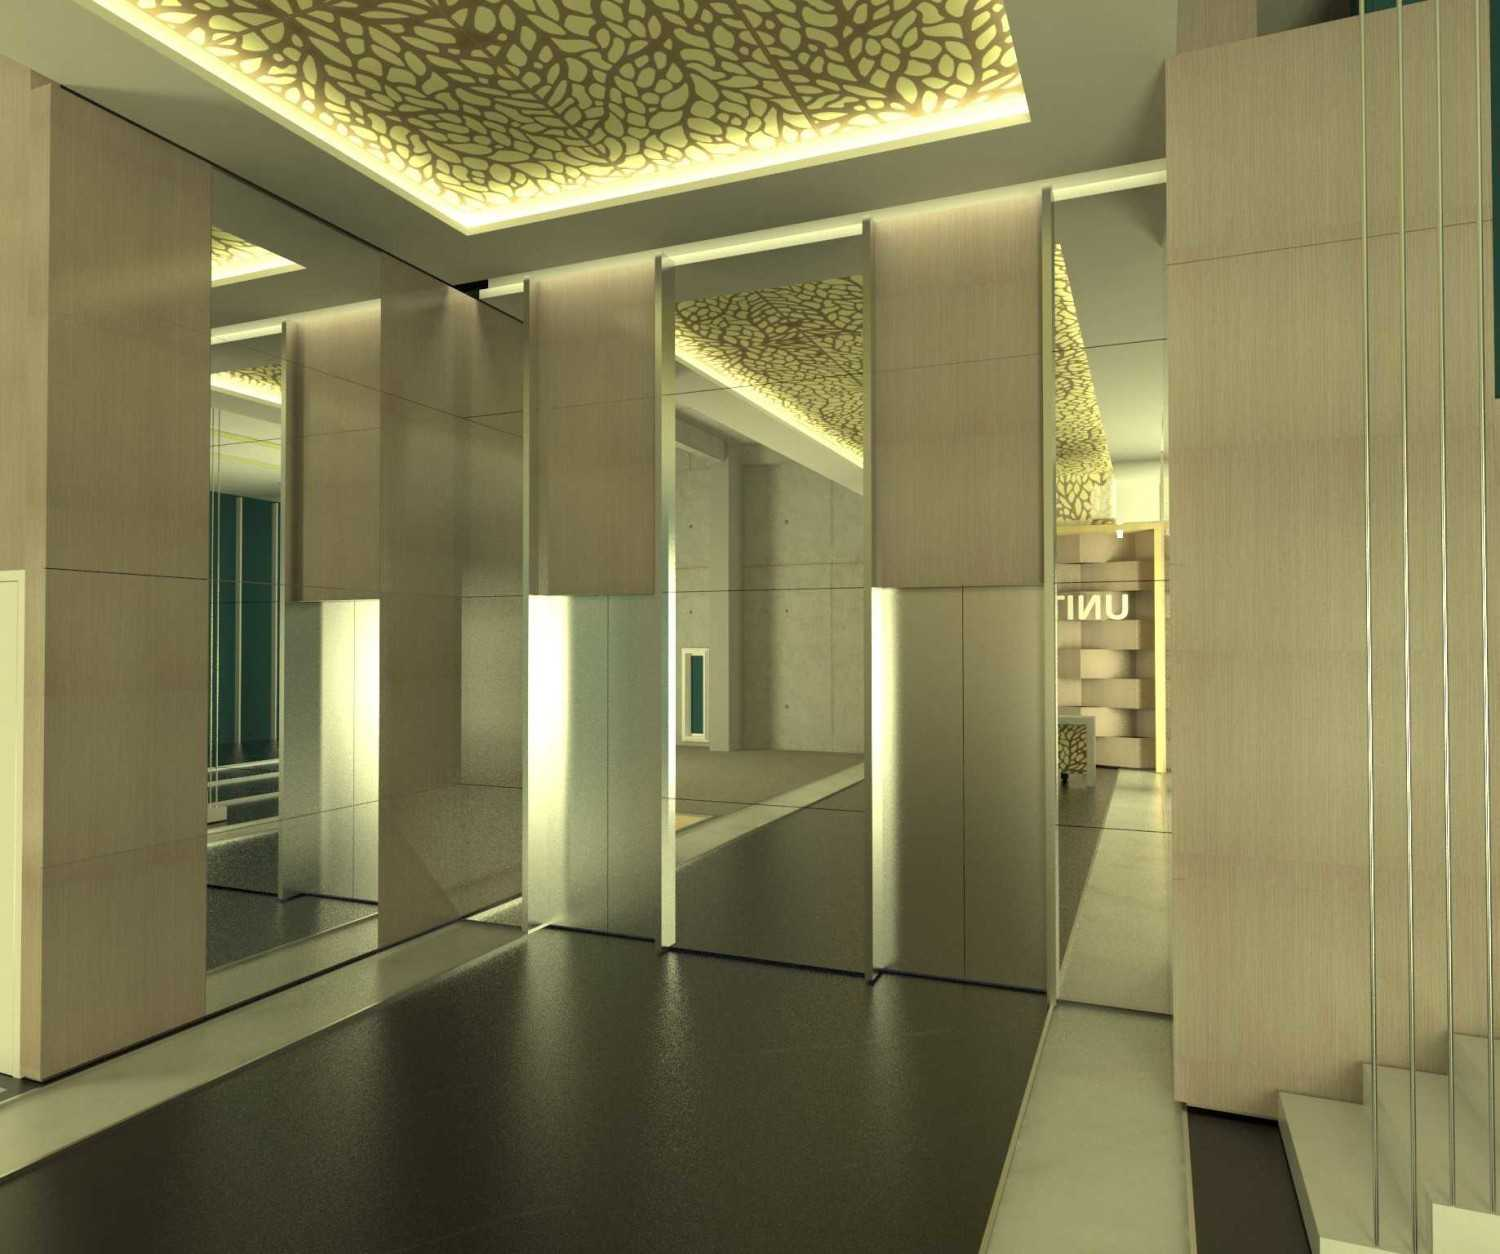 X3M Architects Unity Building Serpong Serpong Lobby-Unity-Tower-2-Hi-Res Modern 25359